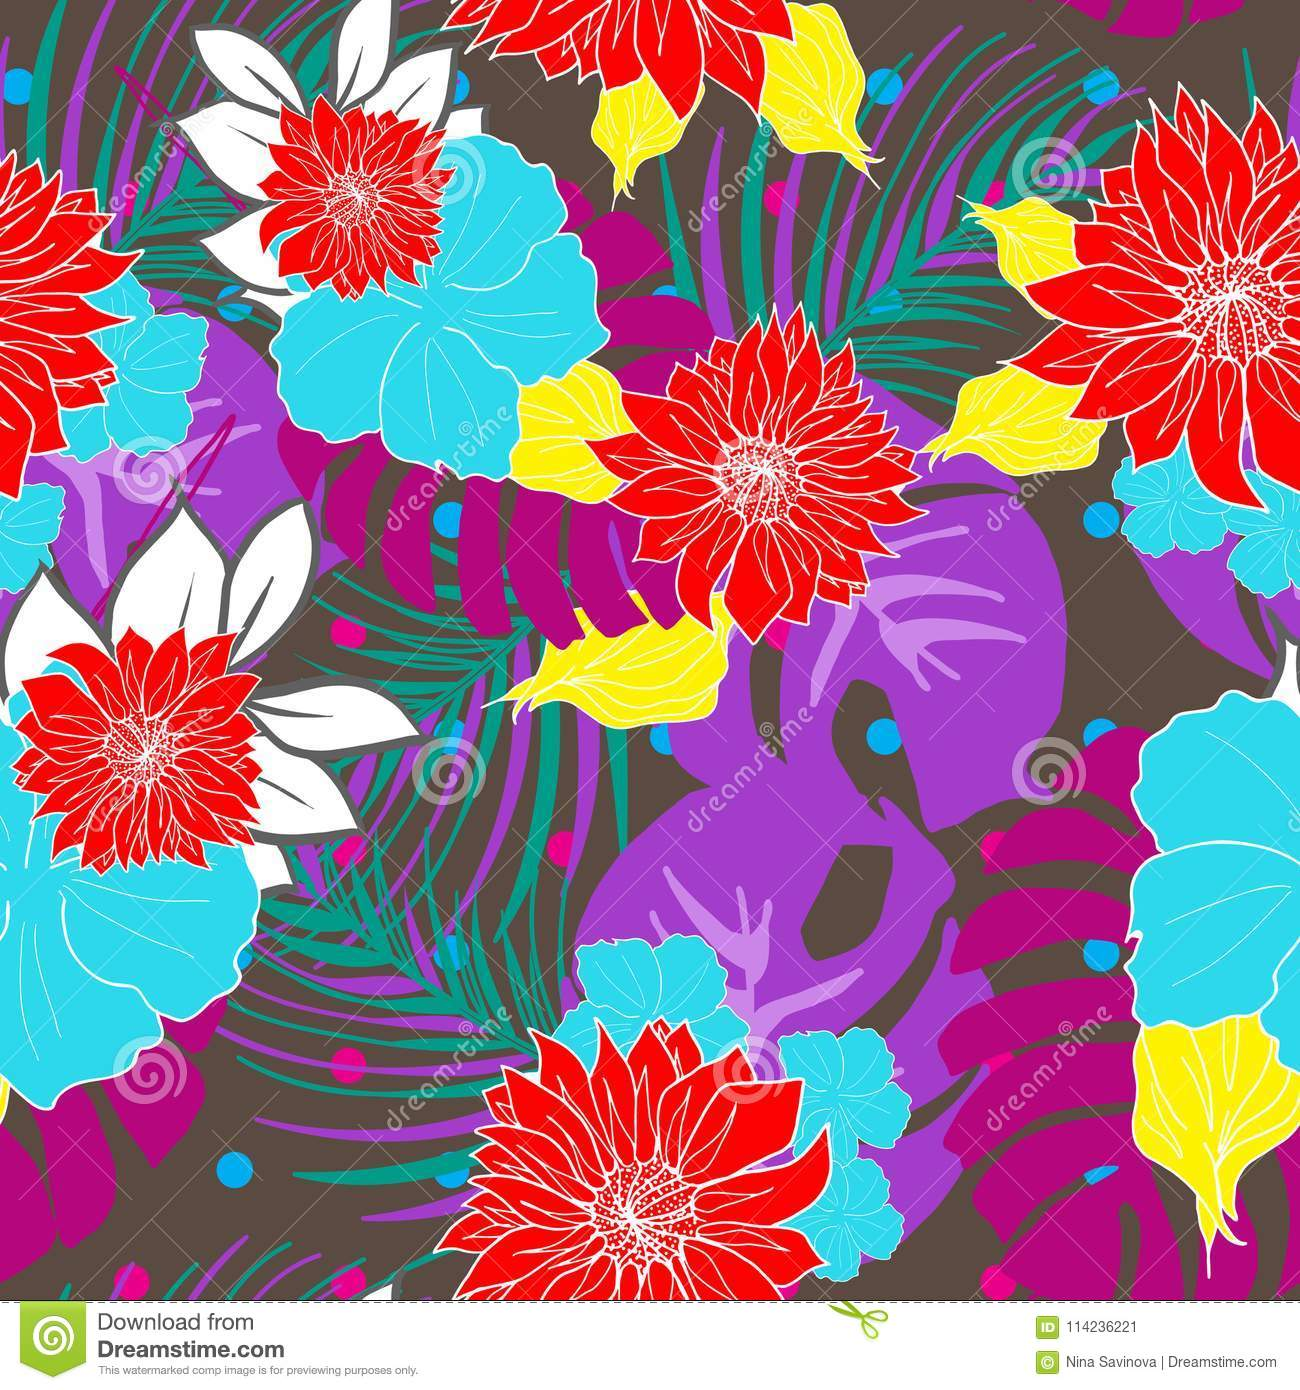 Retro Style Hand Drawn Hawaiian Tropical Leaves And Flowers Design